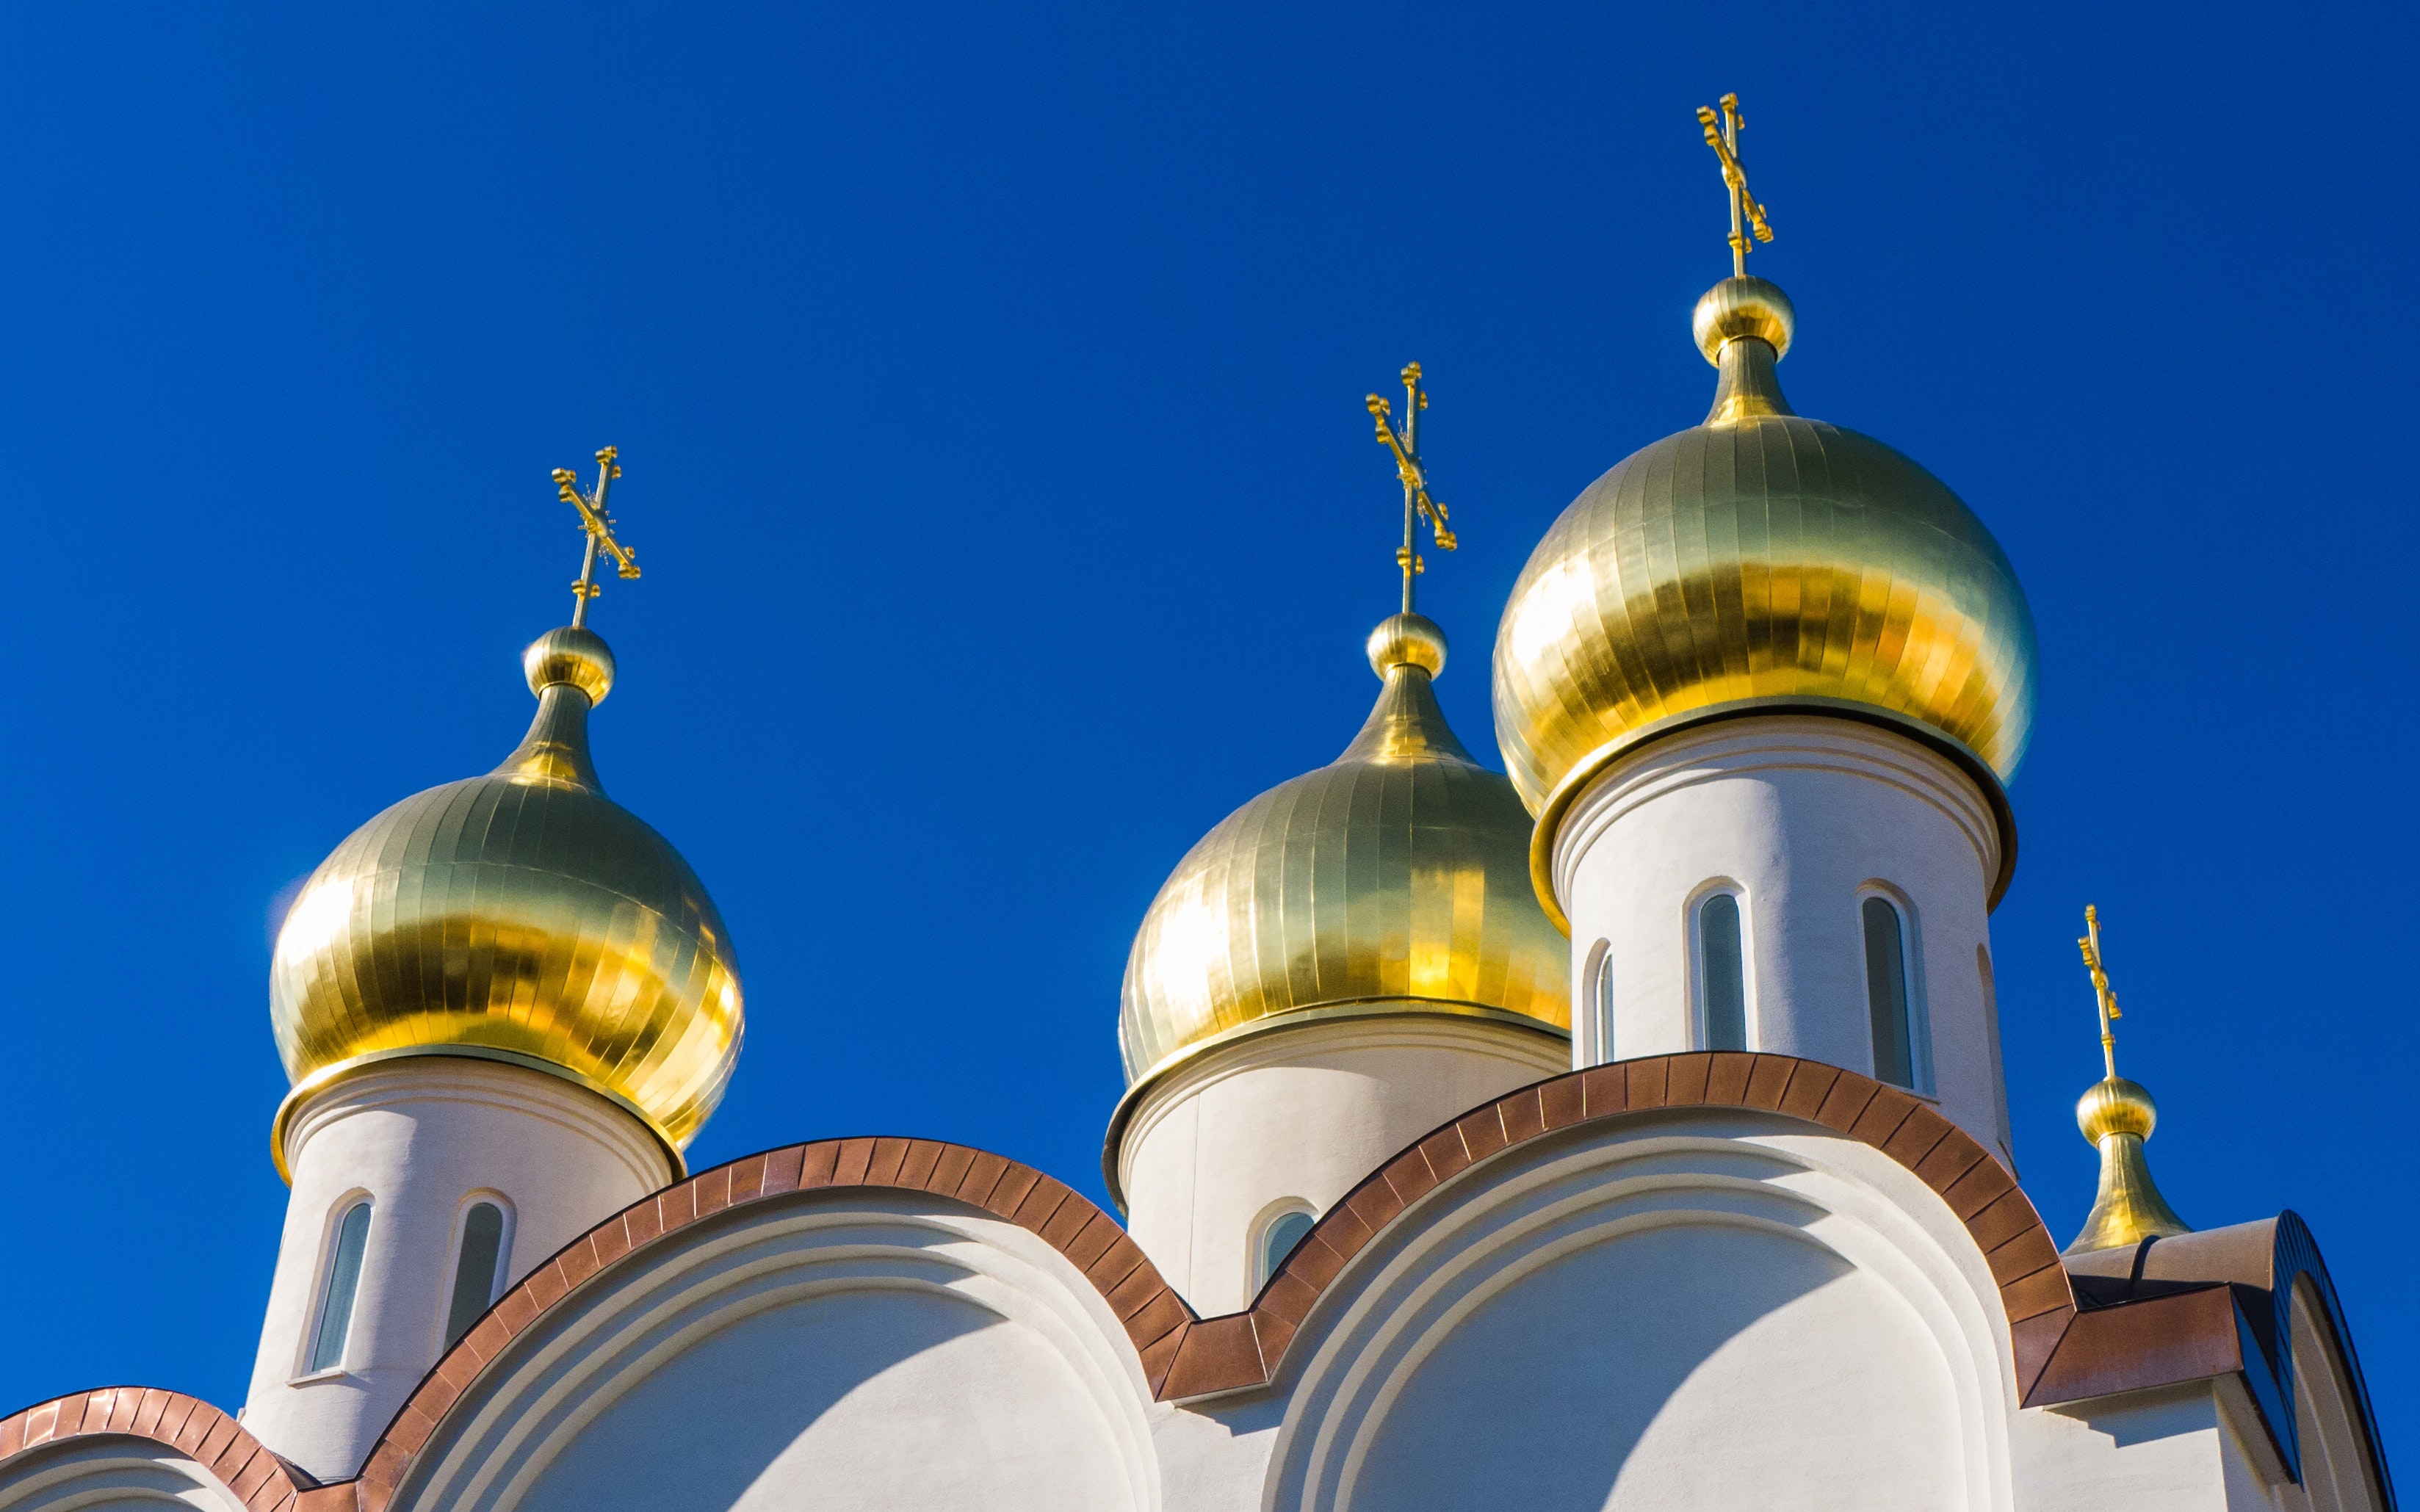 Russian religious regression creates opportunity for Protestant churches